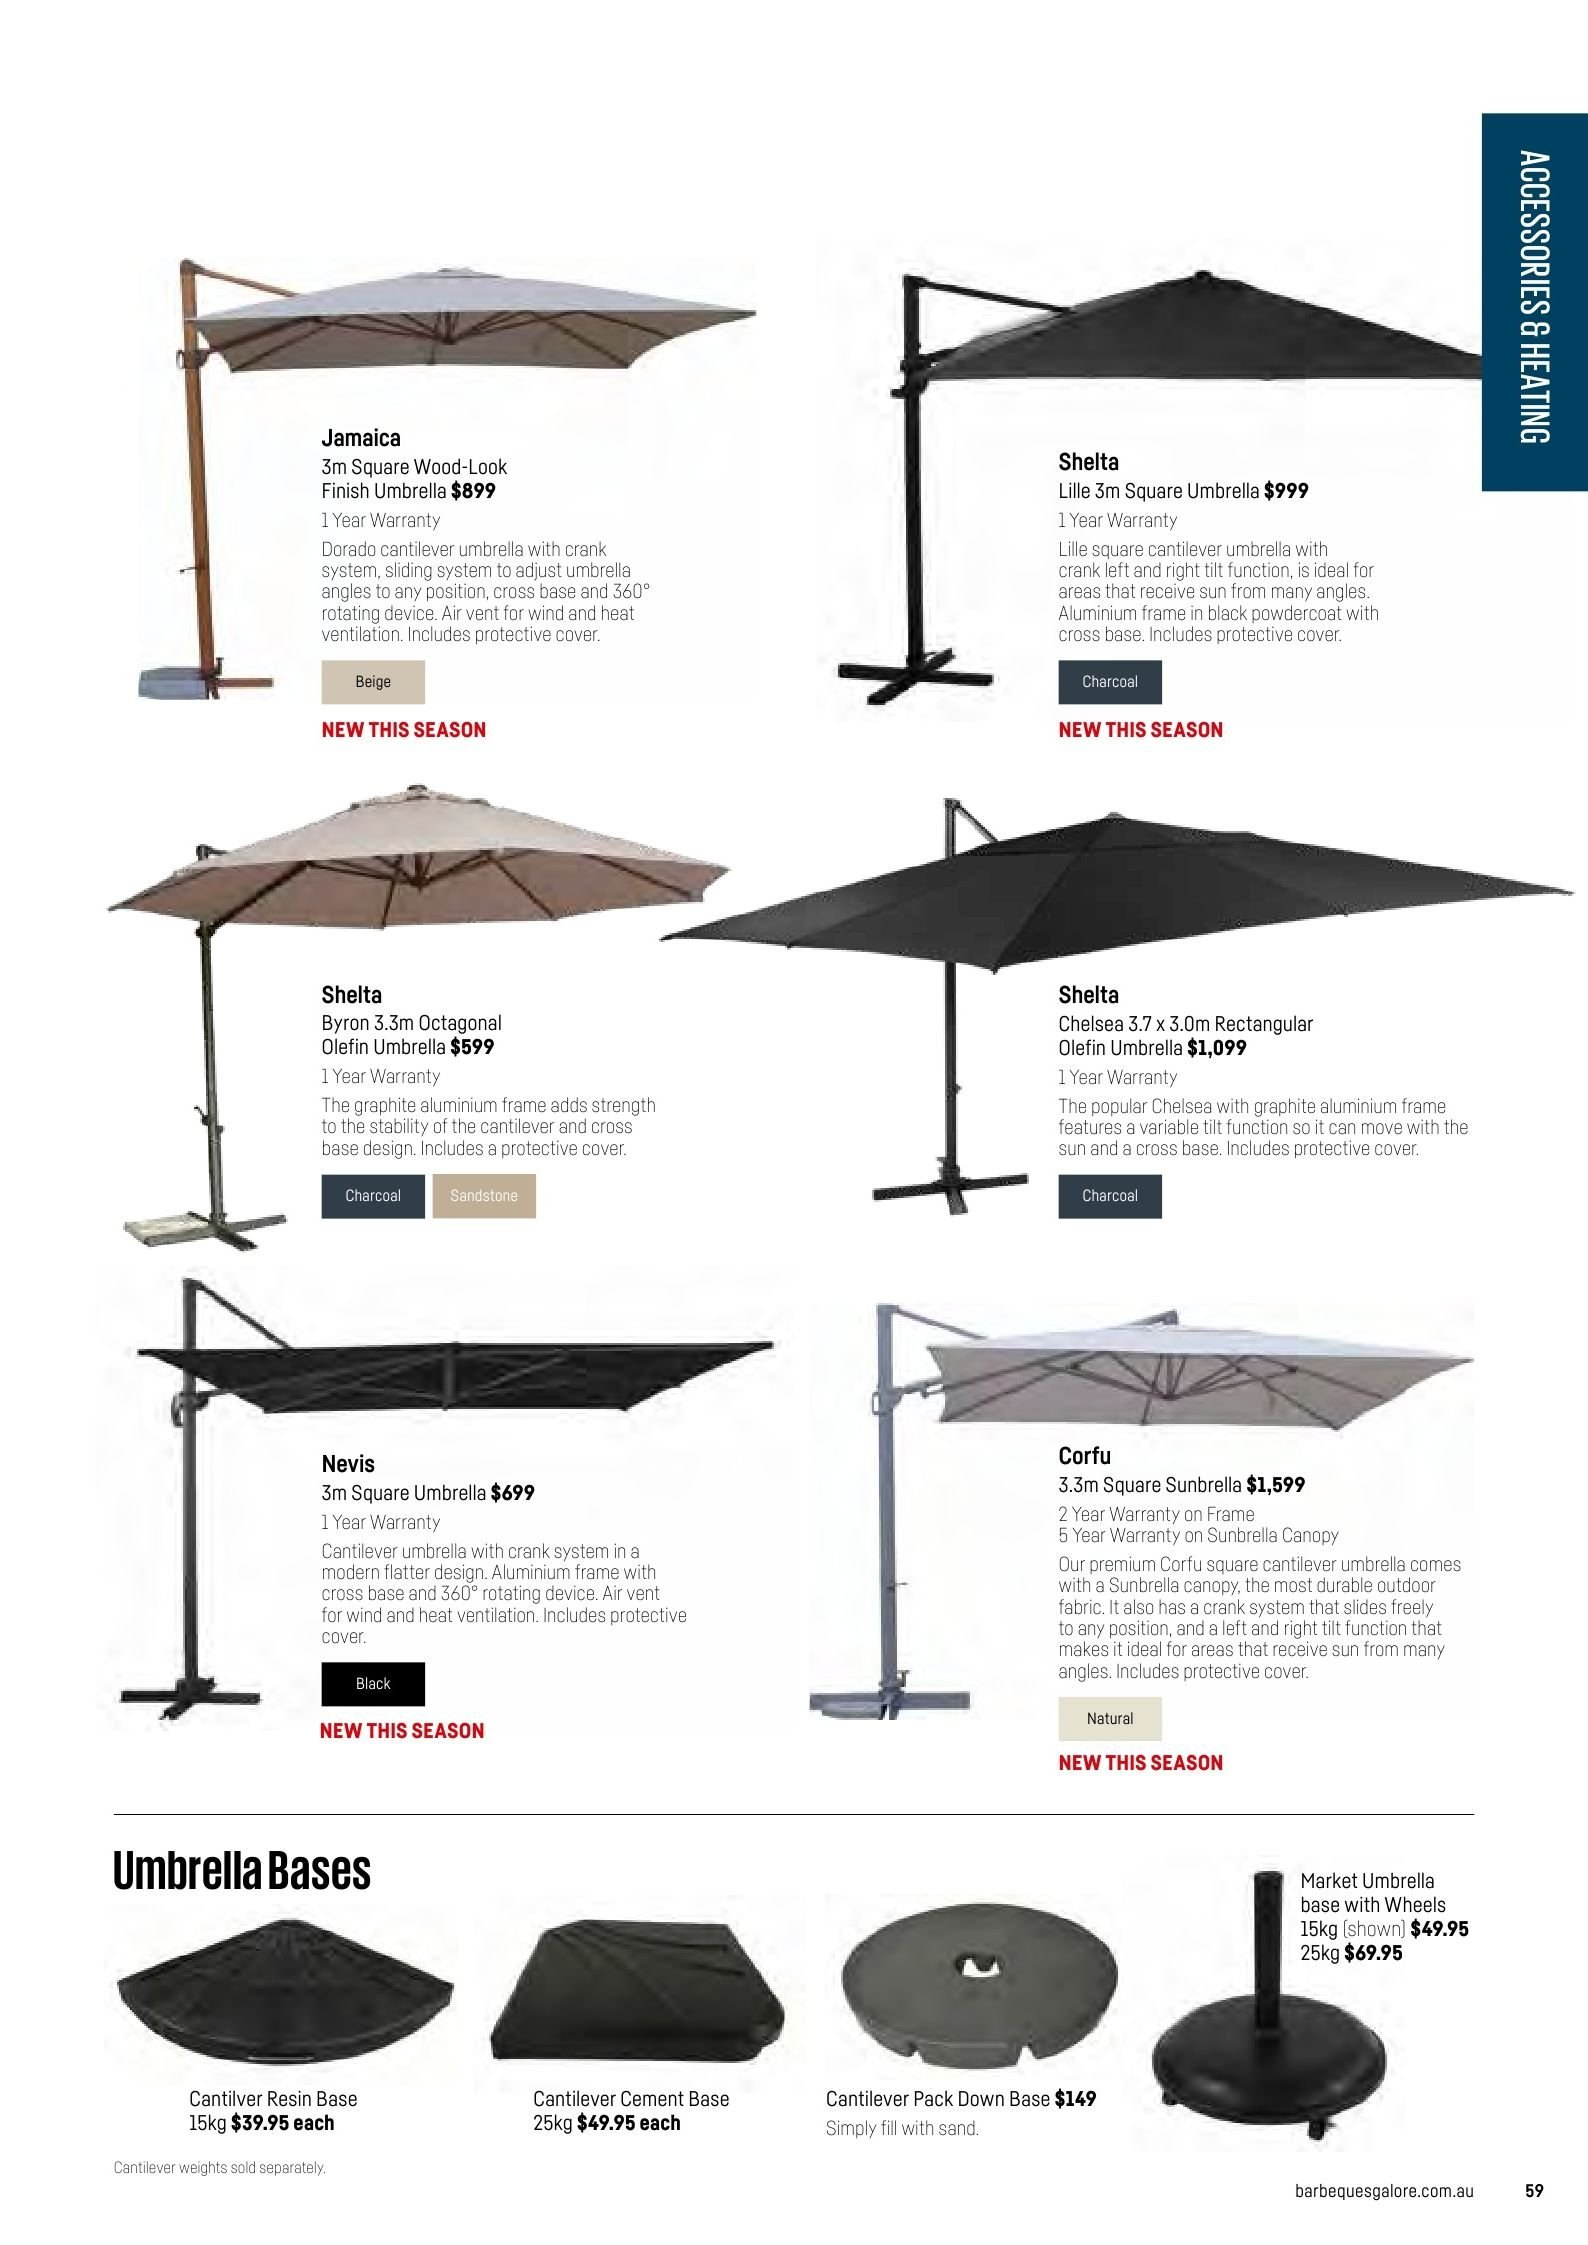 Barbeques galore catalogue sales products canopy slides wind charcoal page